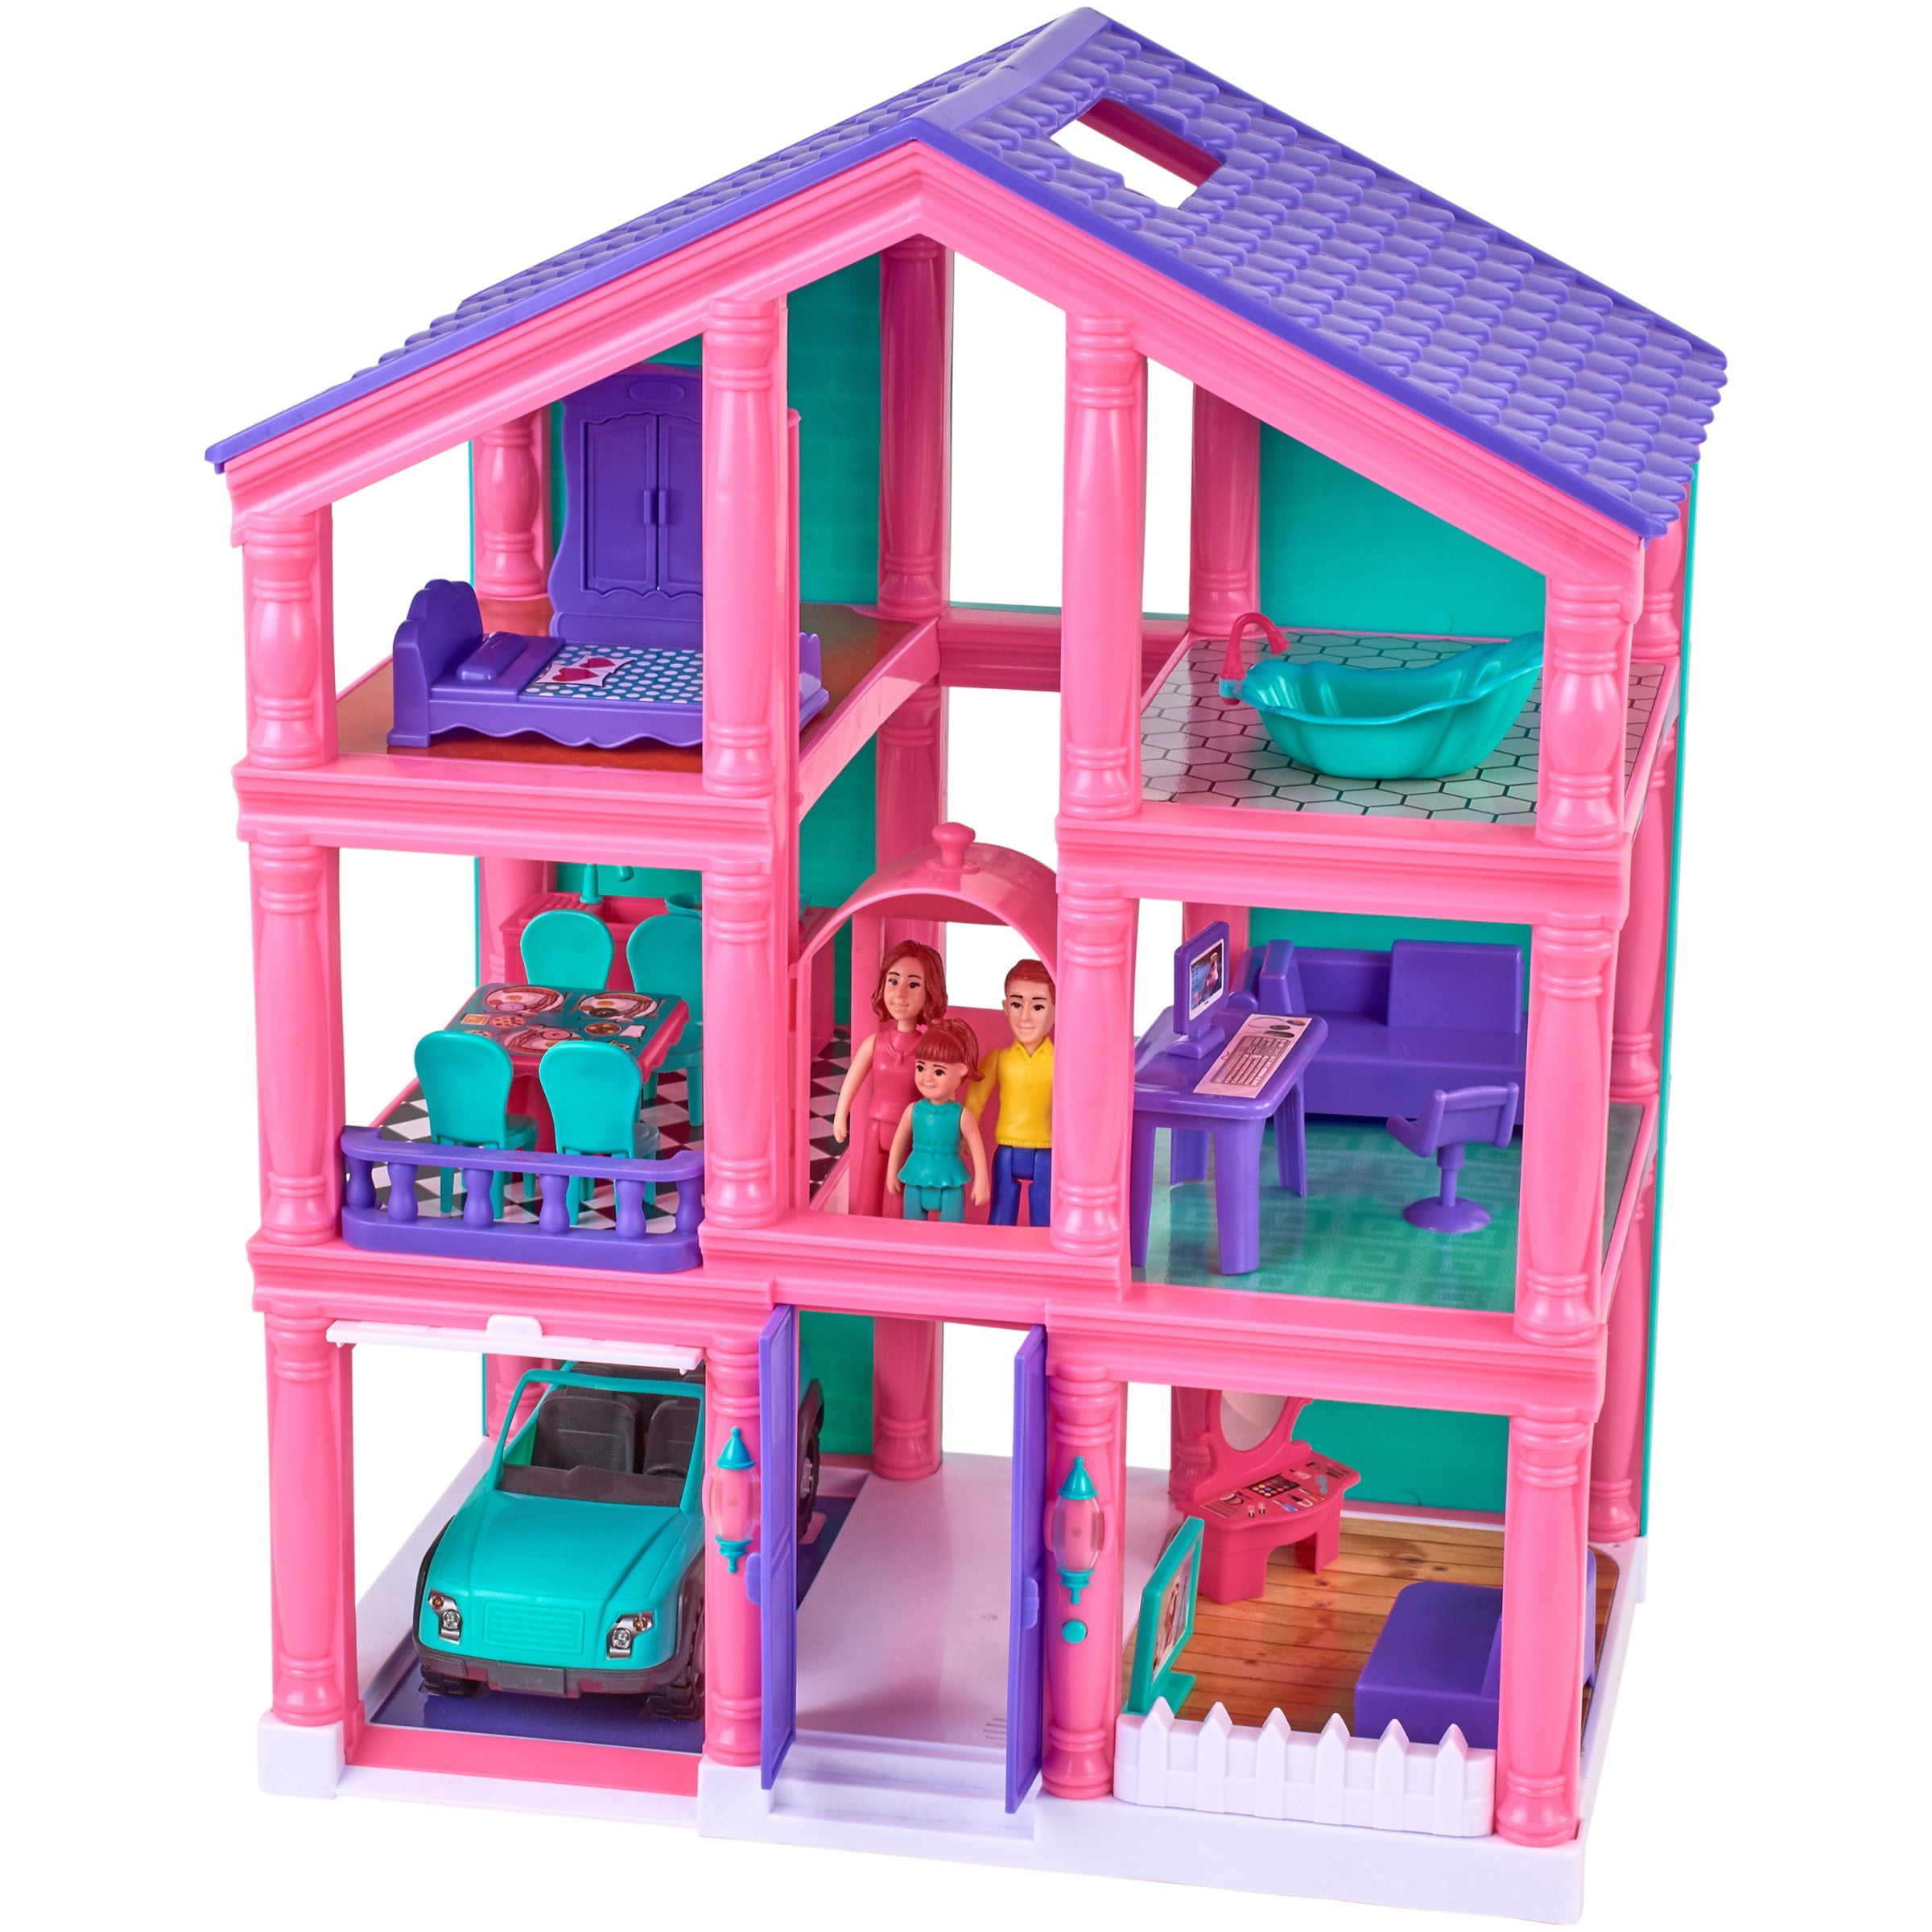 Kid Connection 3 Story Dollhouse Play Set With Working Garage And Elevator 24 Pieces Walmart Com Walmart Com